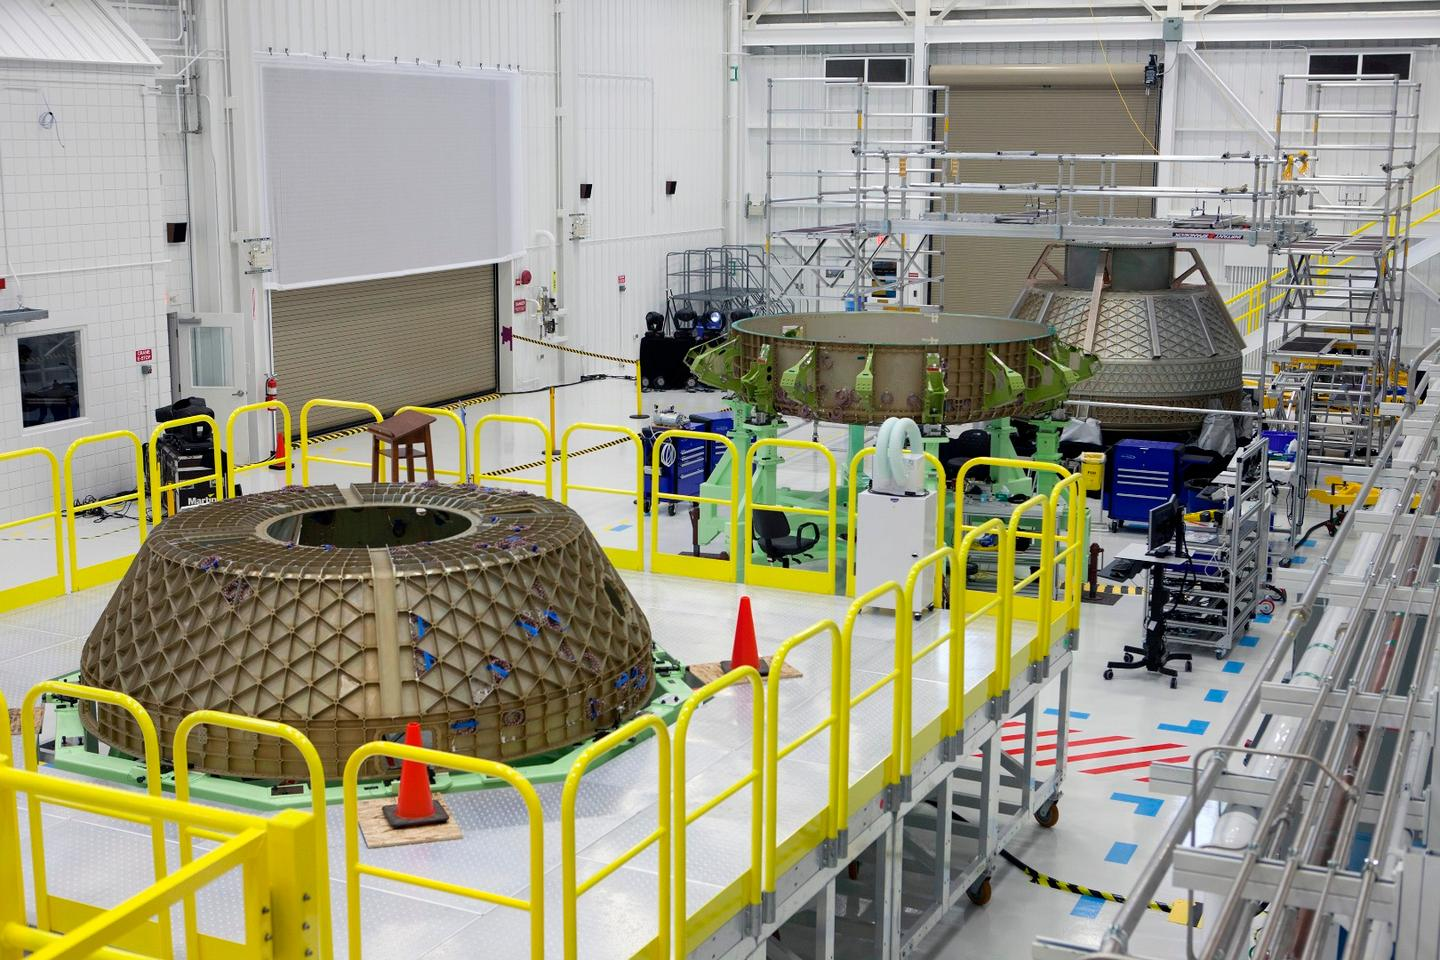 Parts of the Boeing CST-100 Structural Test Article rest on test stands inside the Commercial Crew and Cargo Processing Facility, or C3PF, at NASA's Kennedy Space Center in Florida